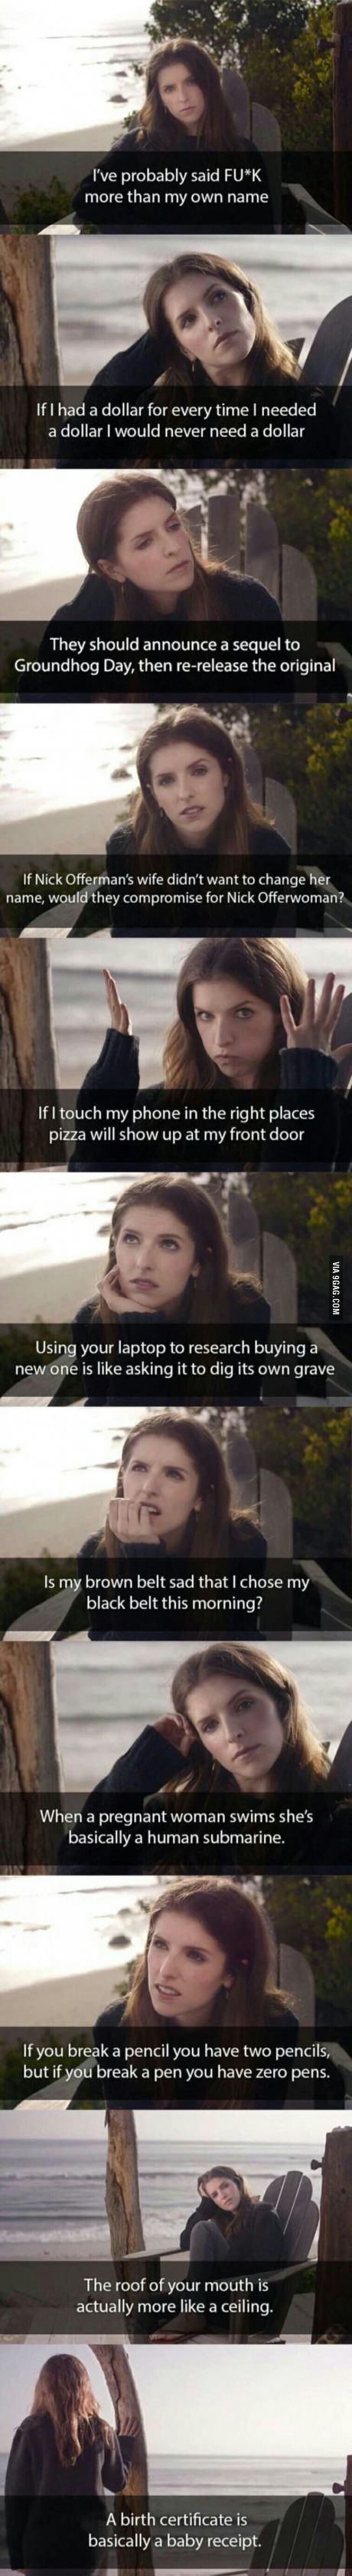 Why I love Anna Kendrick. I don't agree with the first one, but the rest are hilarious.